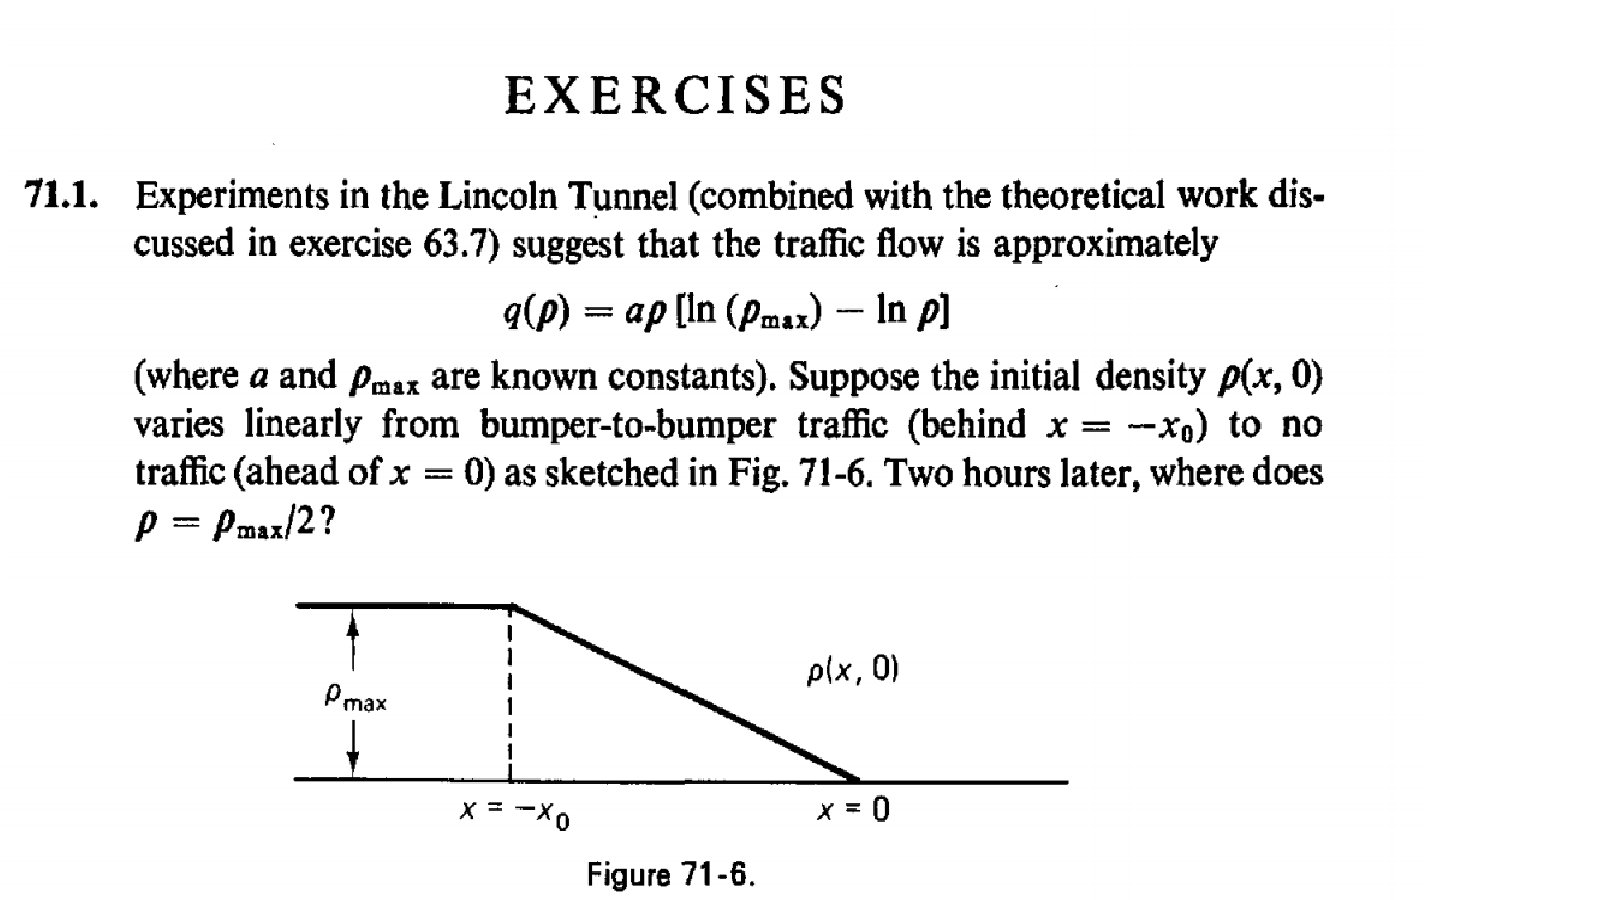 Exercise 71.1 Page 341 On Pdf Math Models Mathemat... | Chegg.com